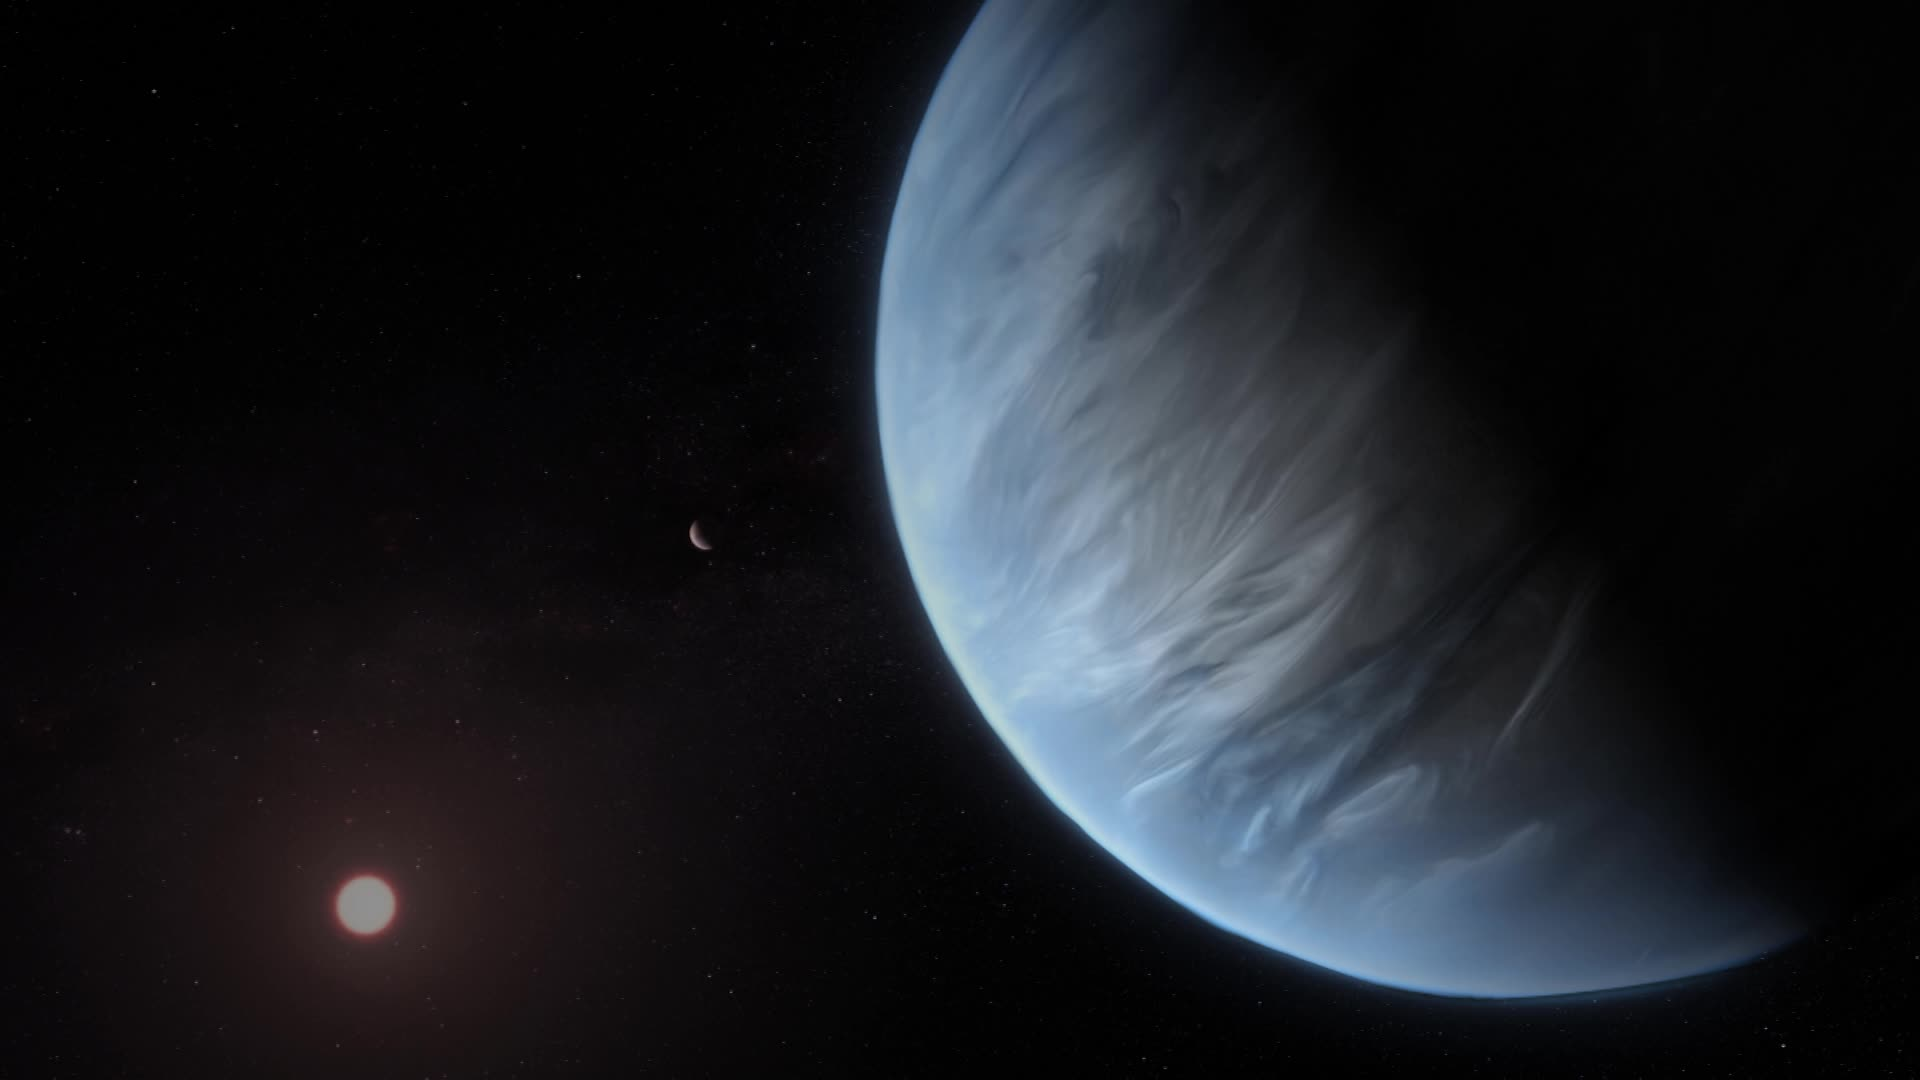 Potentially Habitable 'Super Earth' Discovered 110 Light Years Away